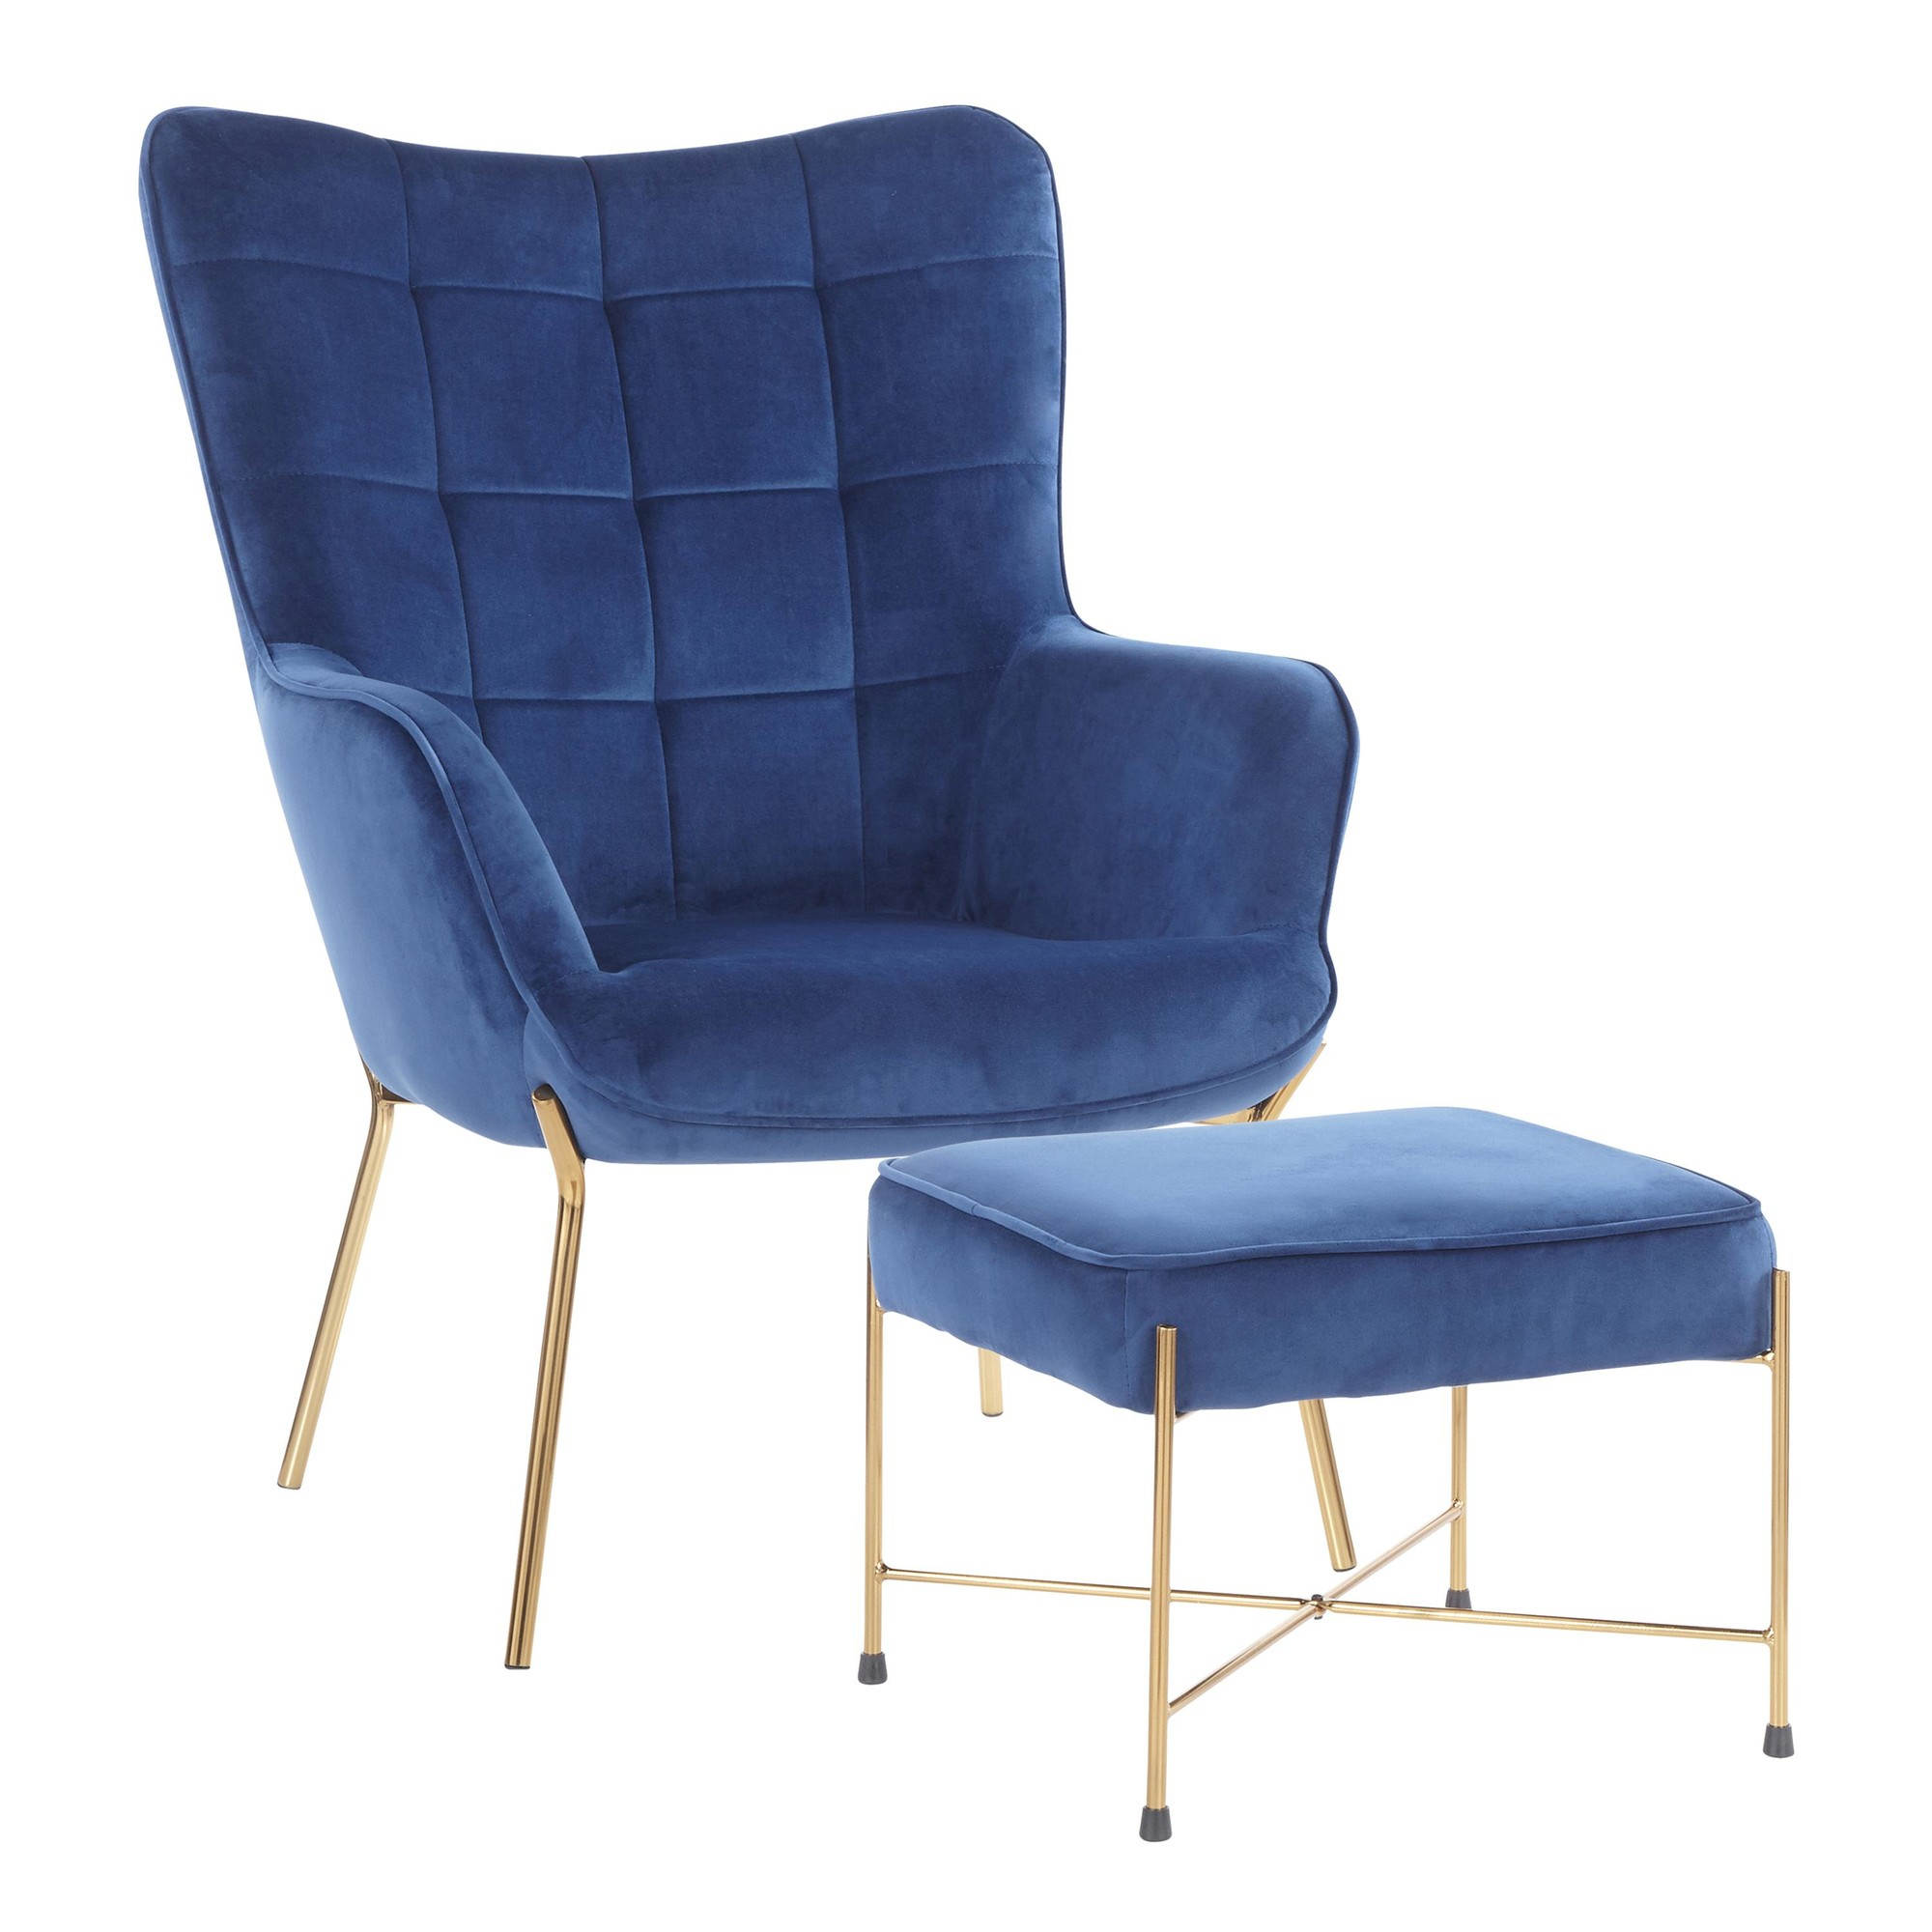 Fantastic Lumisource Izzy Gold Blue Velvet Fabric Lounge Chair And Ottoman Set Uwap Interior Chair Design Uwaporg